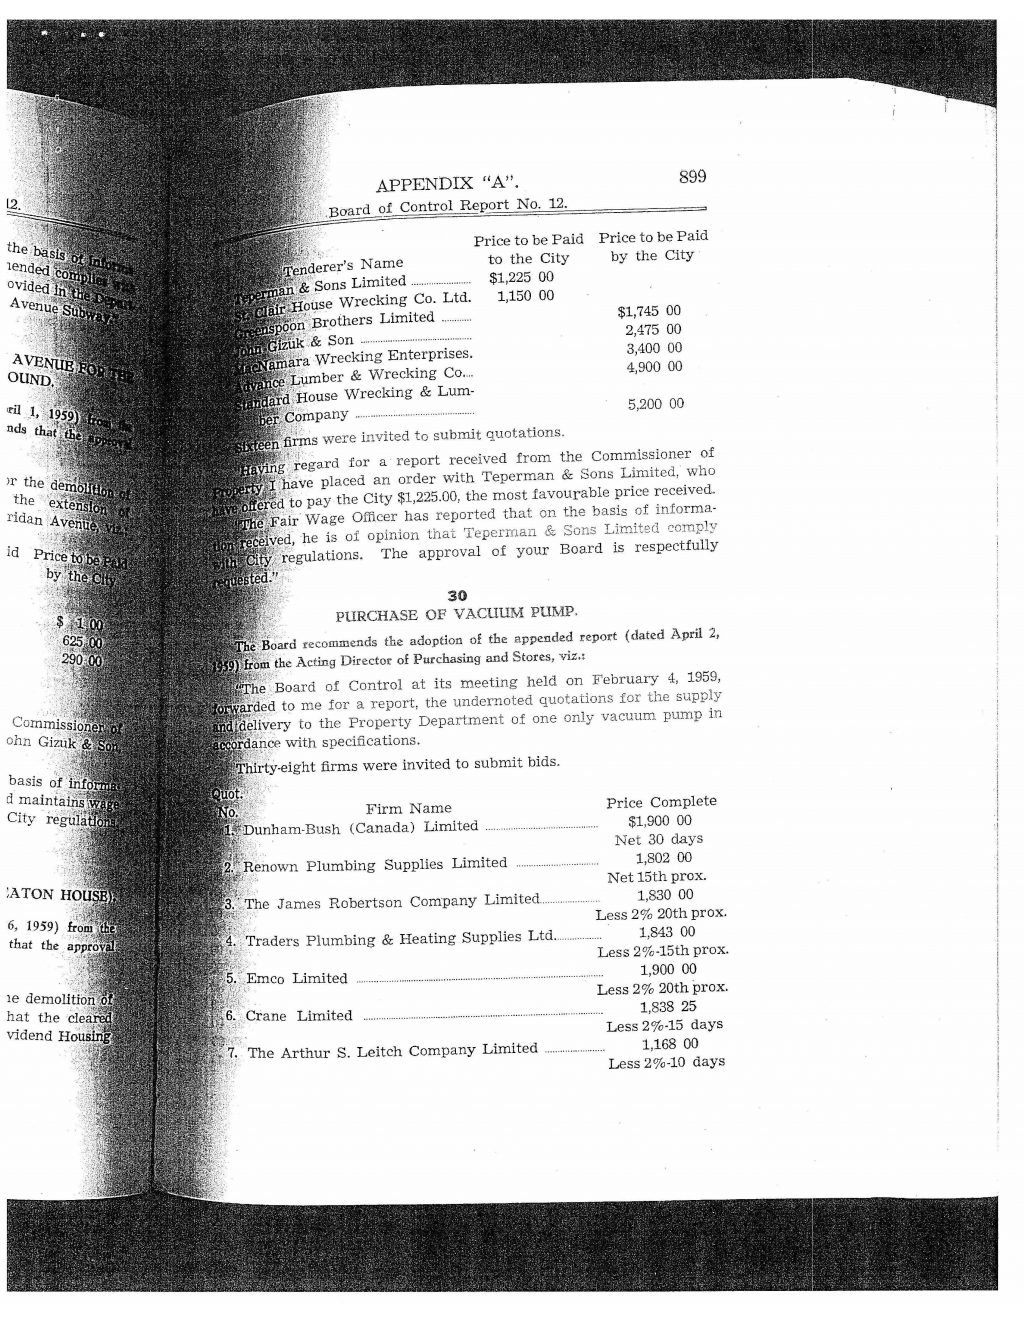 "Board of Control Report No. 7, Appendix A, 1959: ""Proposed Housing Project - 320 Seaton Street"" and ""Demolition of No. 320 Seaton Street (Old Seaton House)""."